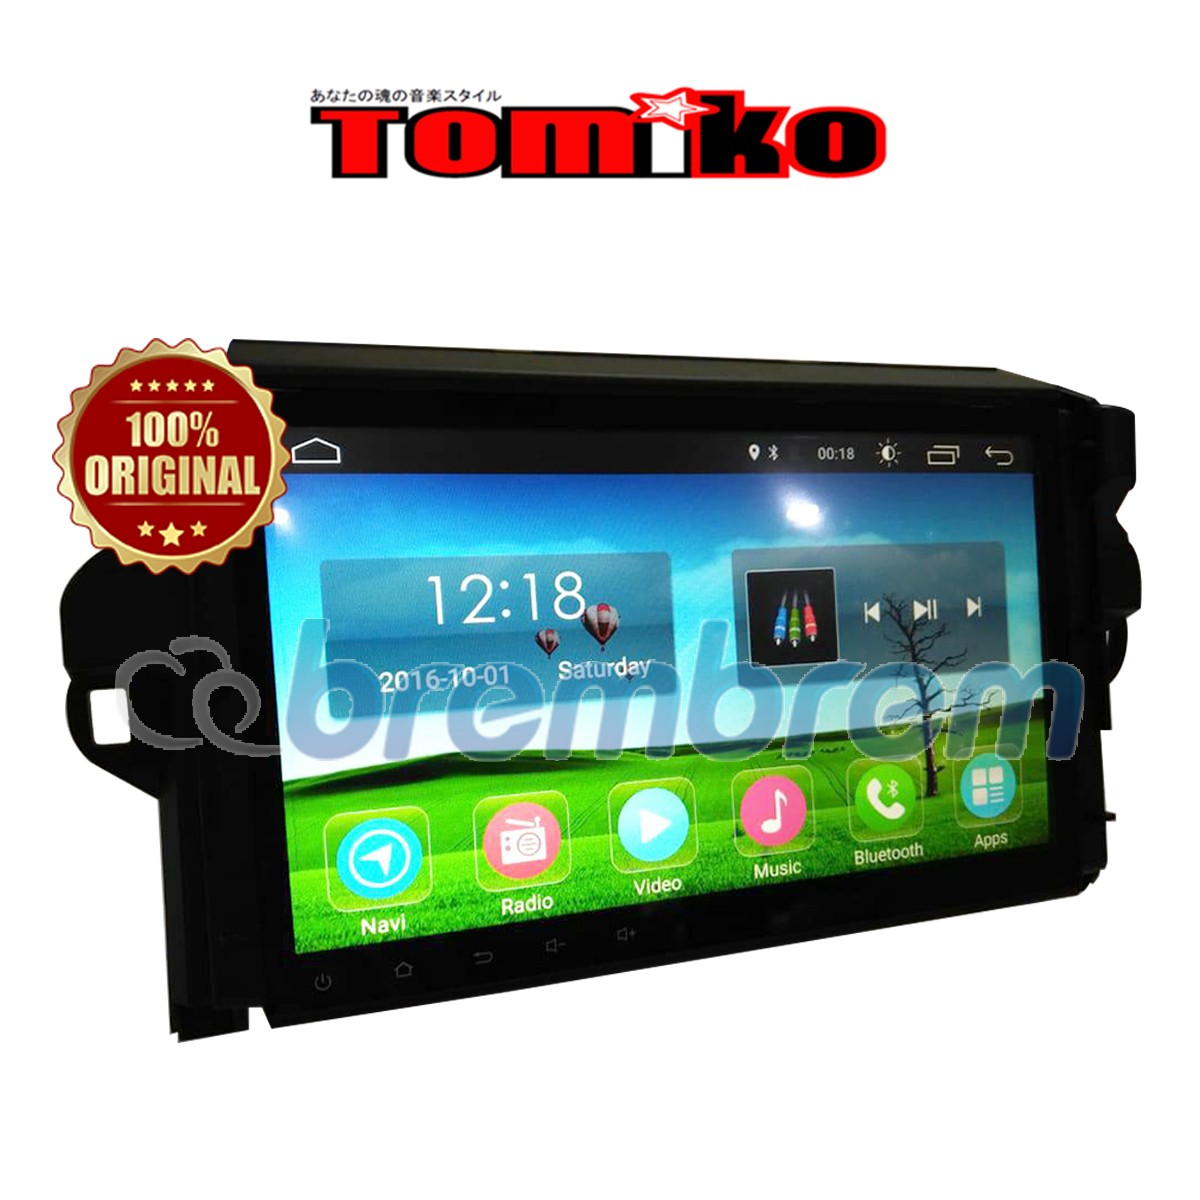 TOMIKO ANDROID 4G LTE FORTUNER 10 INCH - HEADUNIT OEM